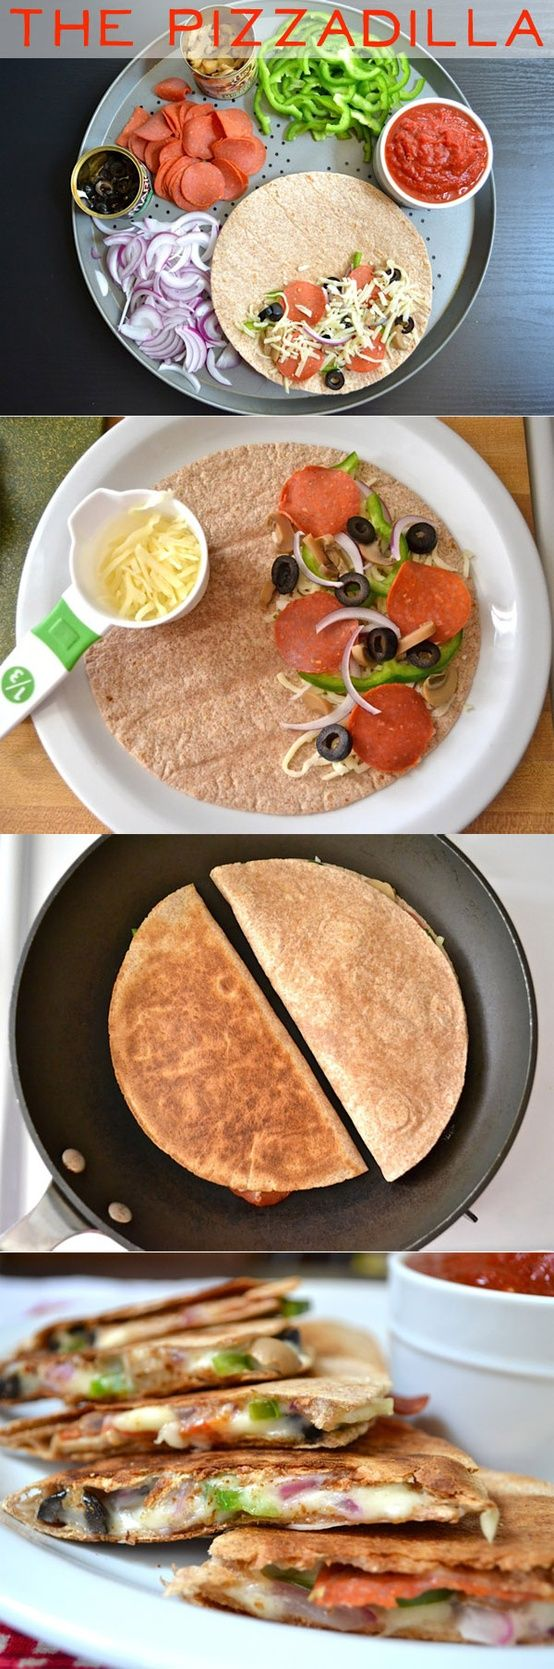 Pizzadillas - Seeing as I could eat pizza for breakfast, lunch and dinner everyday for the rest of my life, WHY have I never thought of this?!